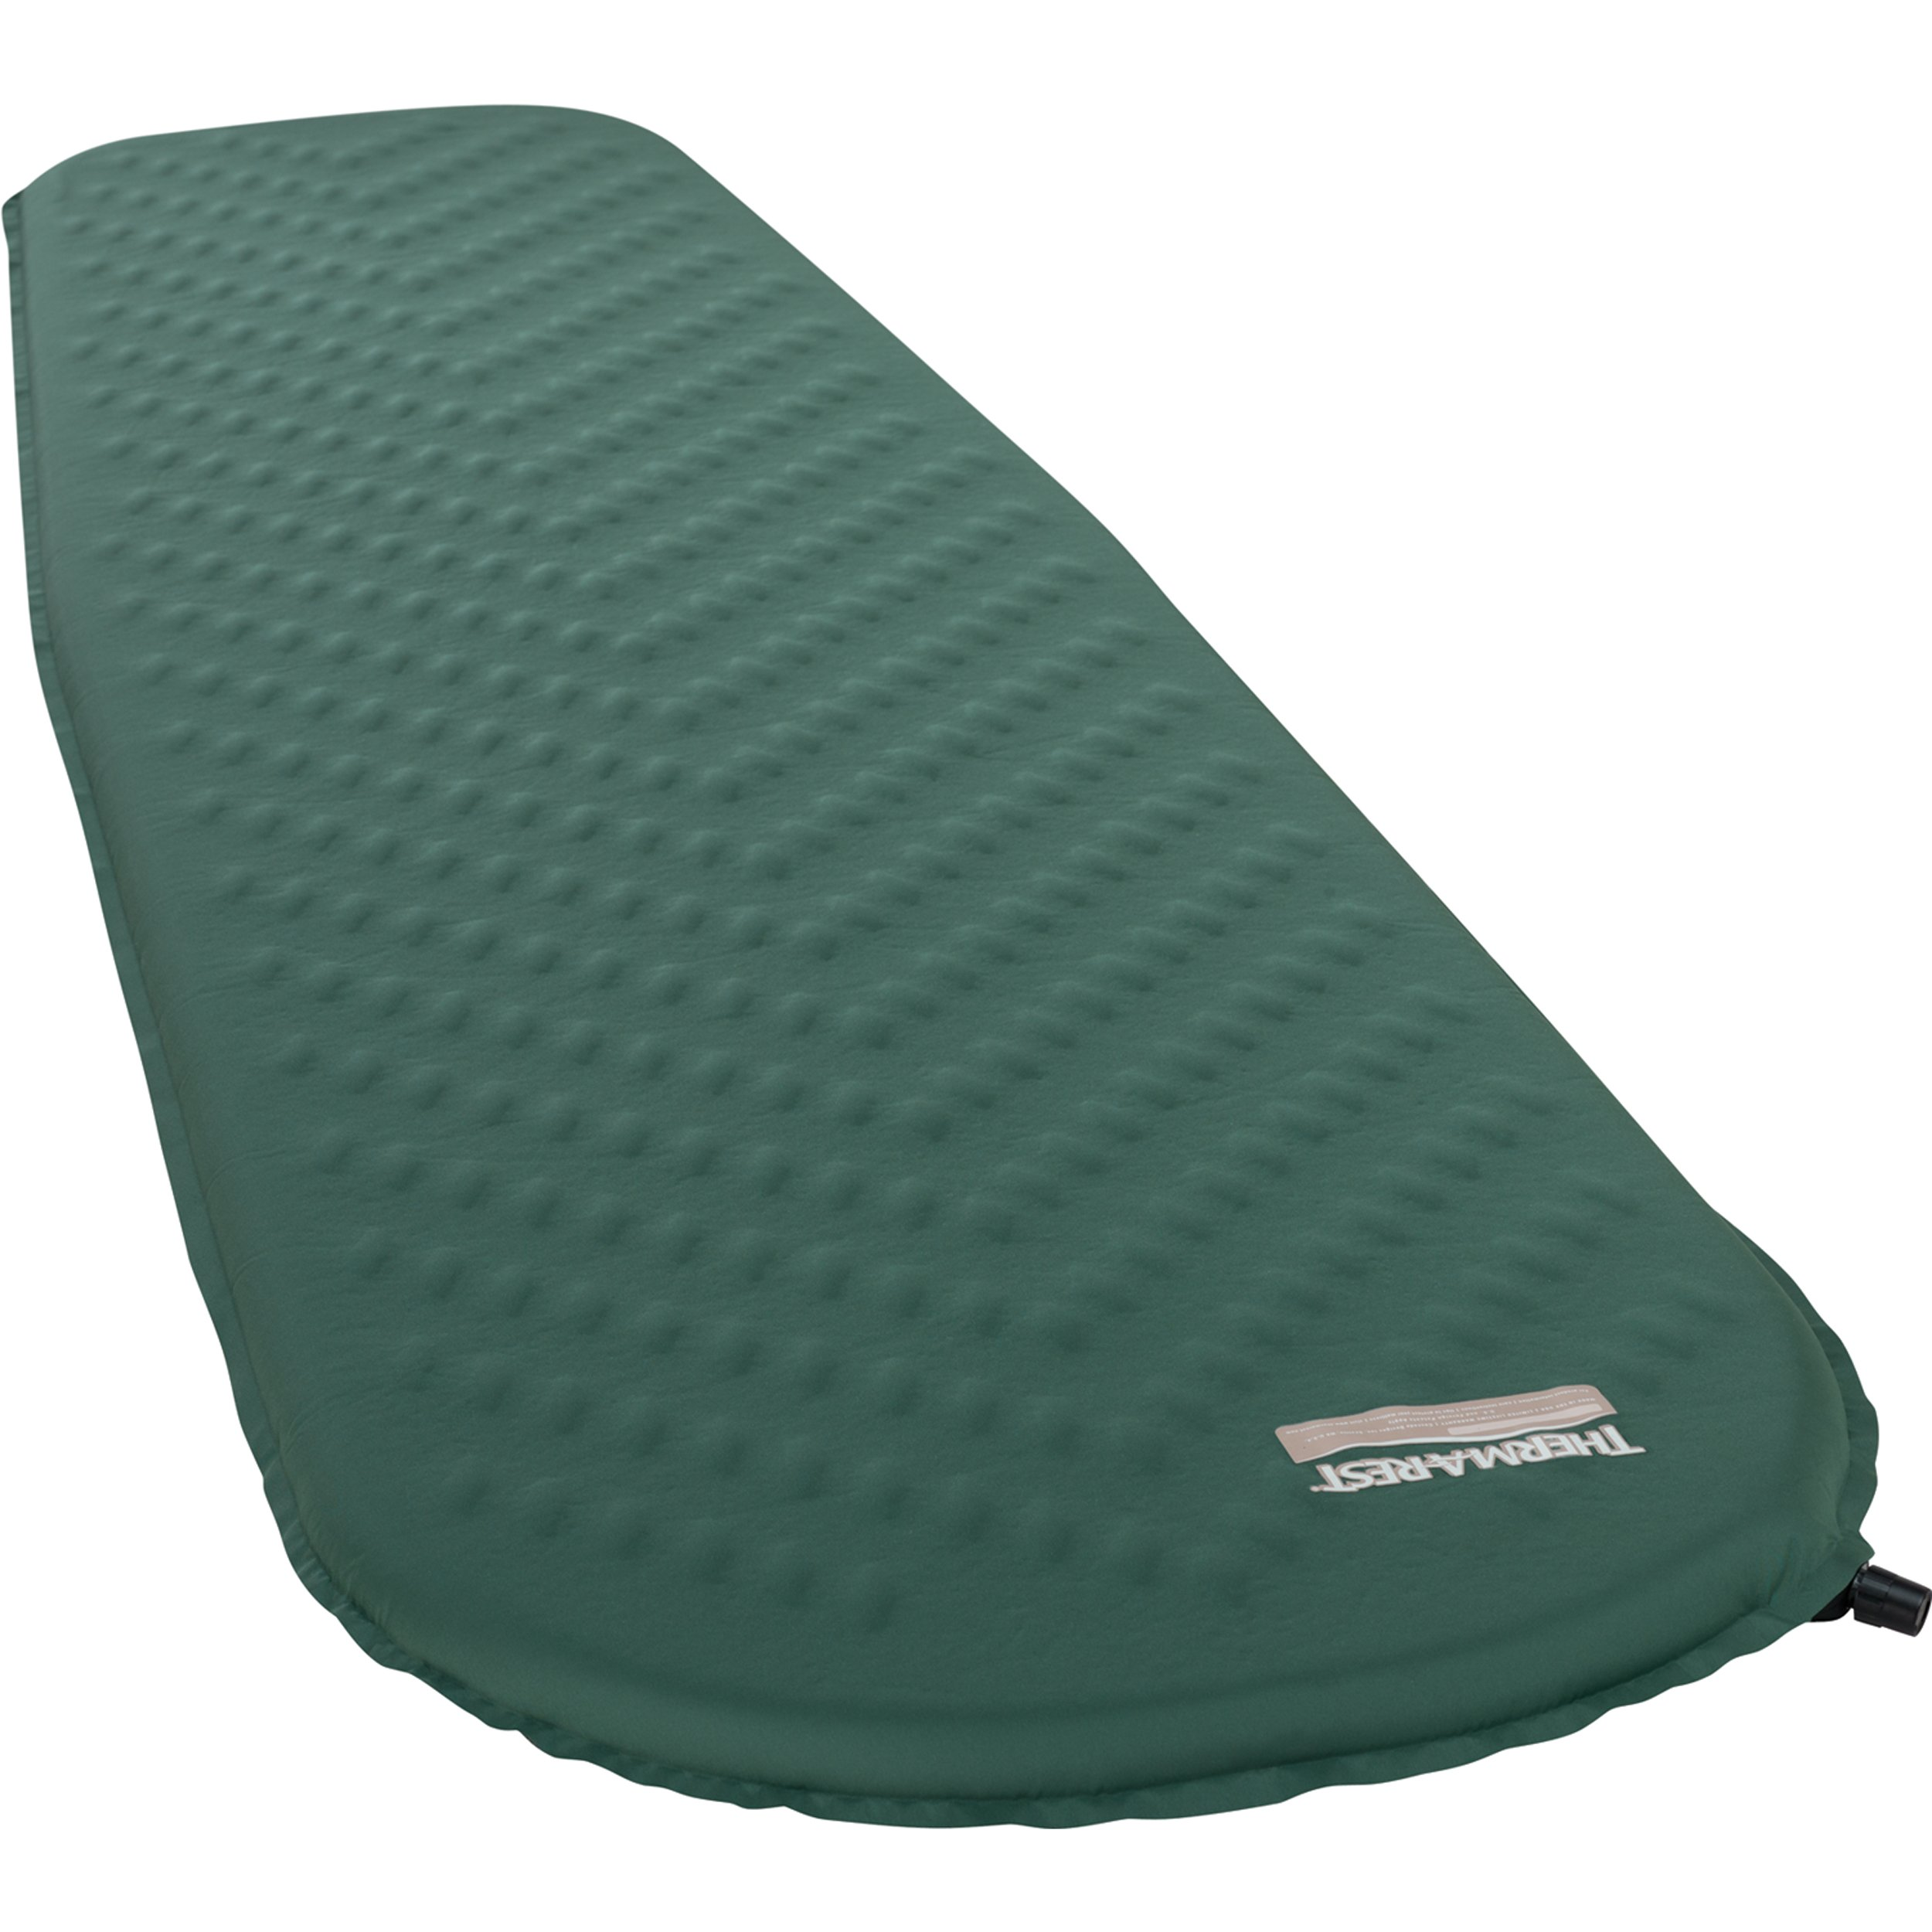 Therm-a-Rest Trail Lite Self-Inflating Foam Camping Pad, Large - 25 x 77 Inches by Therm-a-Rest